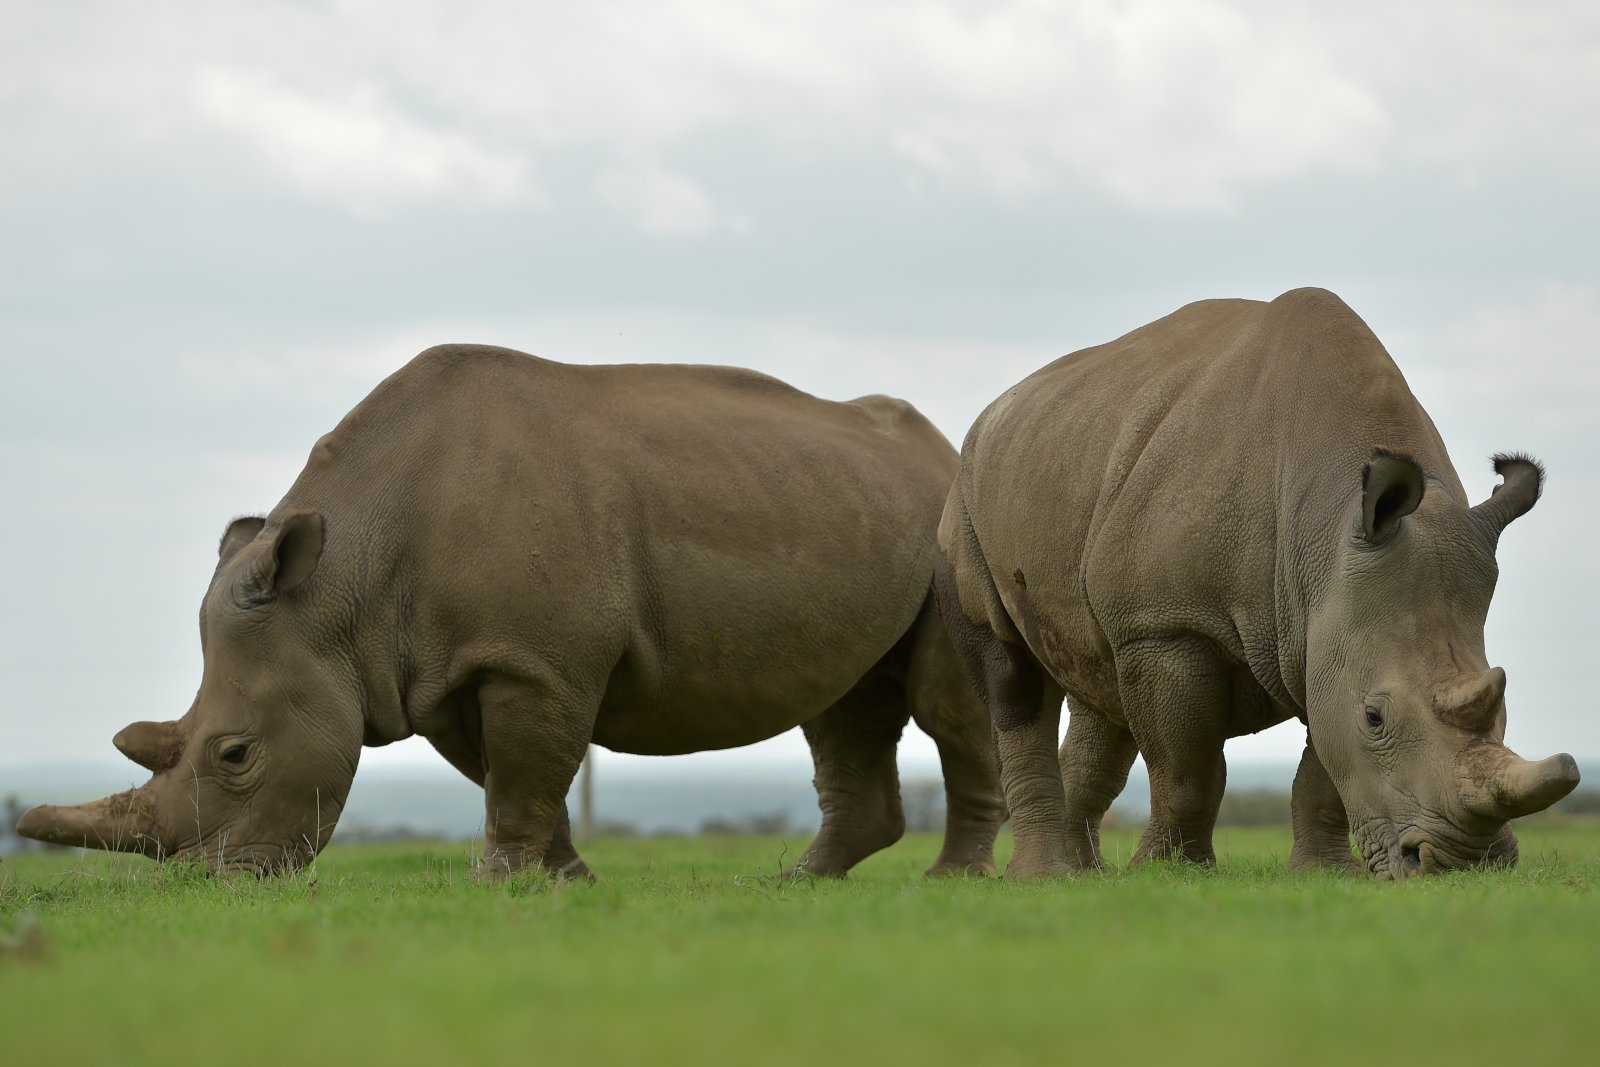 Test tube embryo transfer may give near-extinct rhinos a second chance | DeviceDaily.com